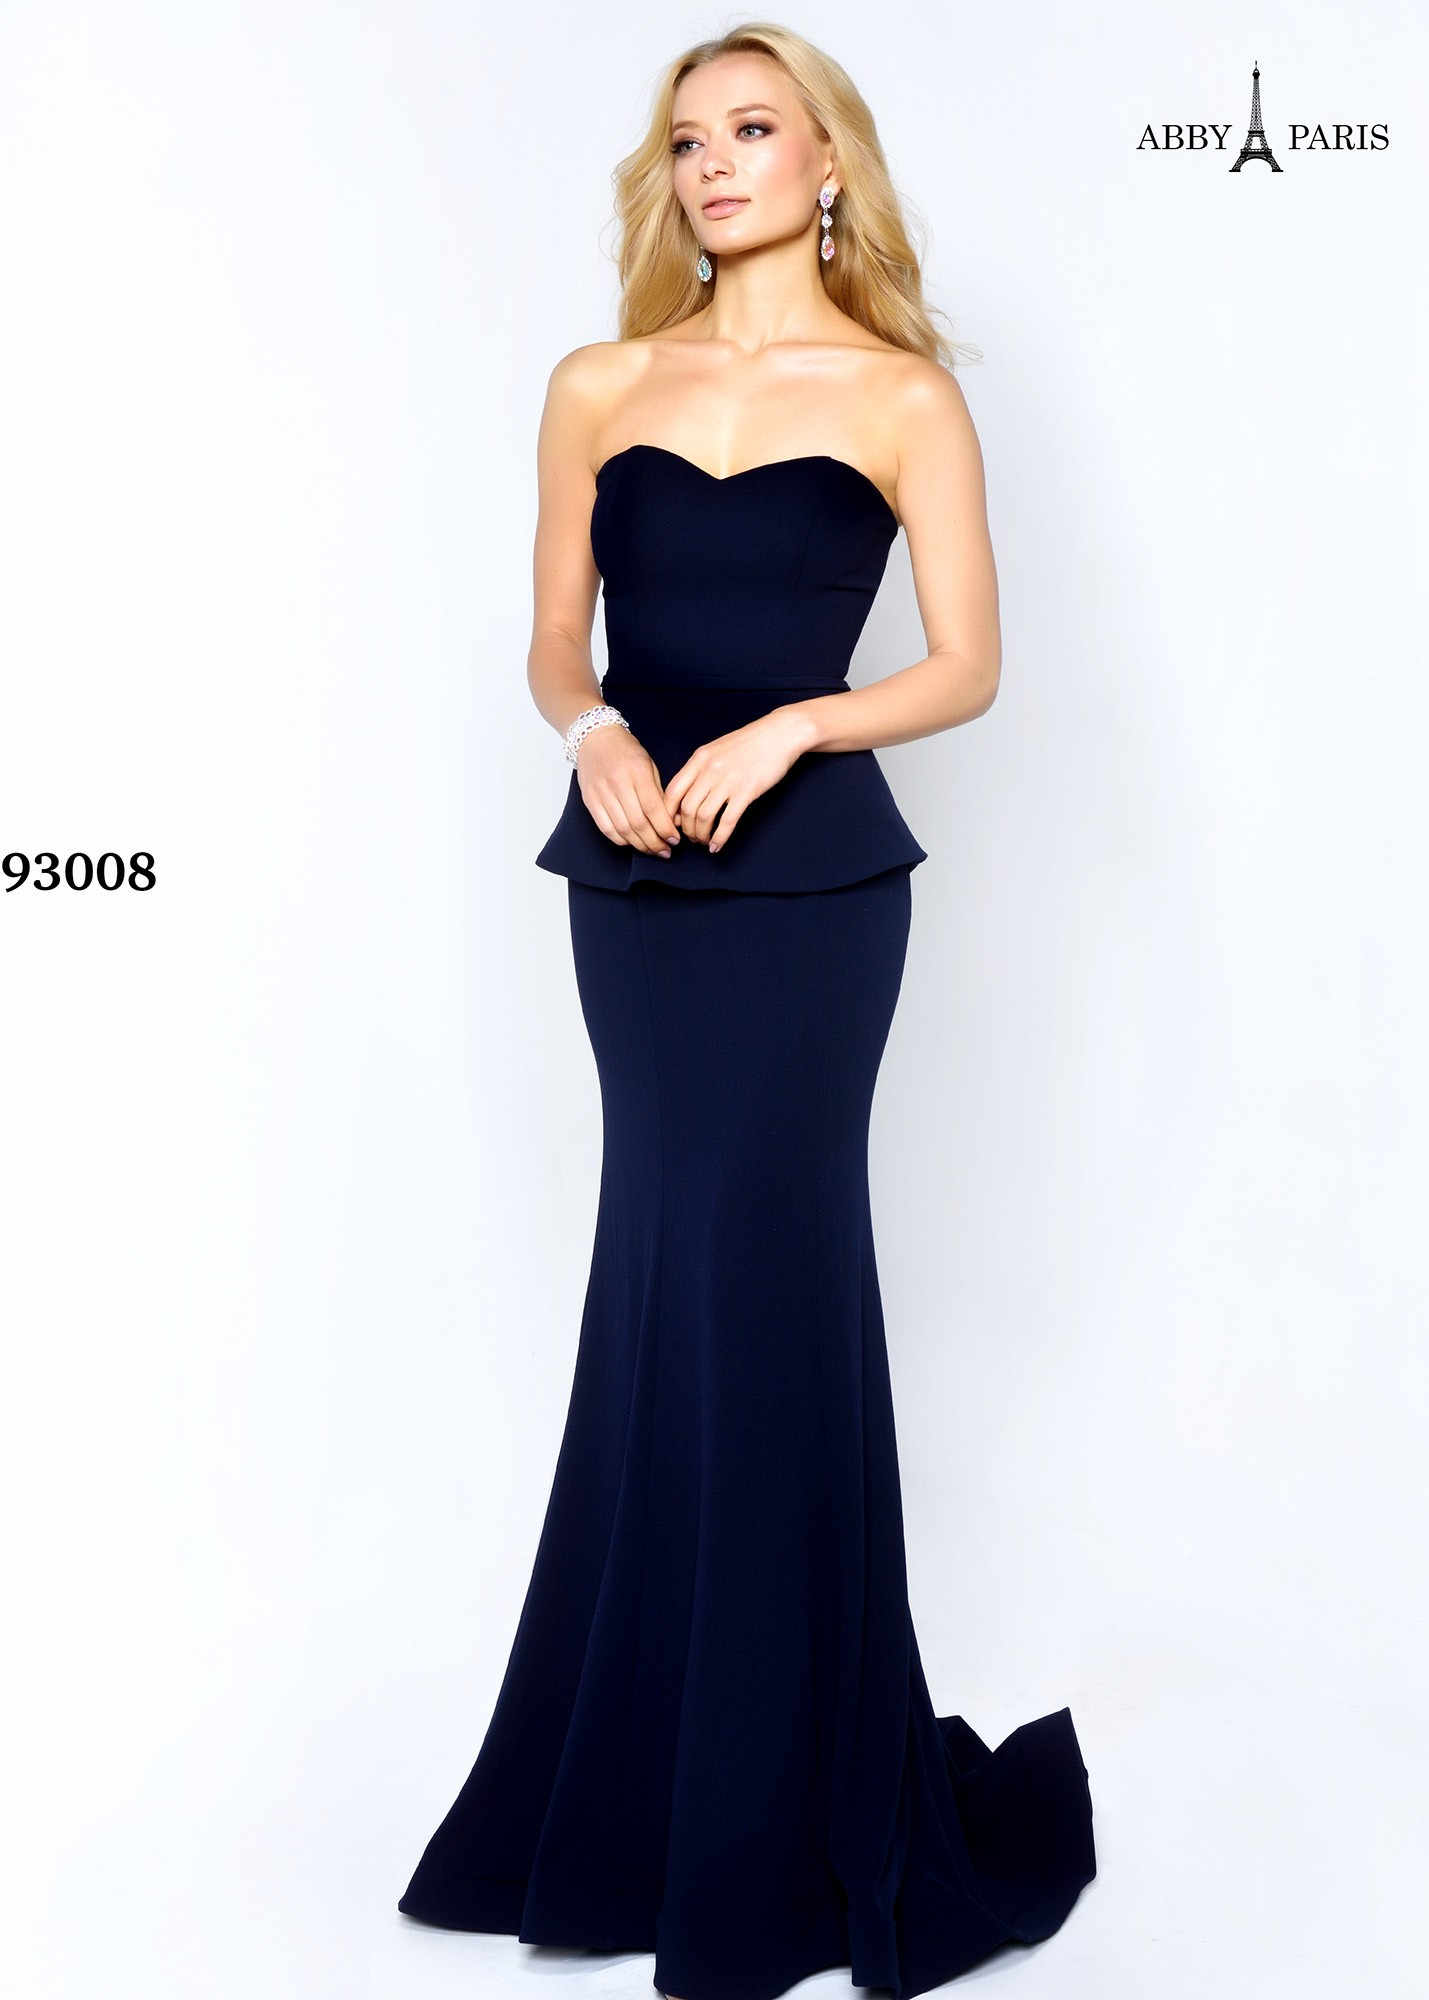 Abby Paris by Lucci Lu 93008 Strapless Peplum Gown